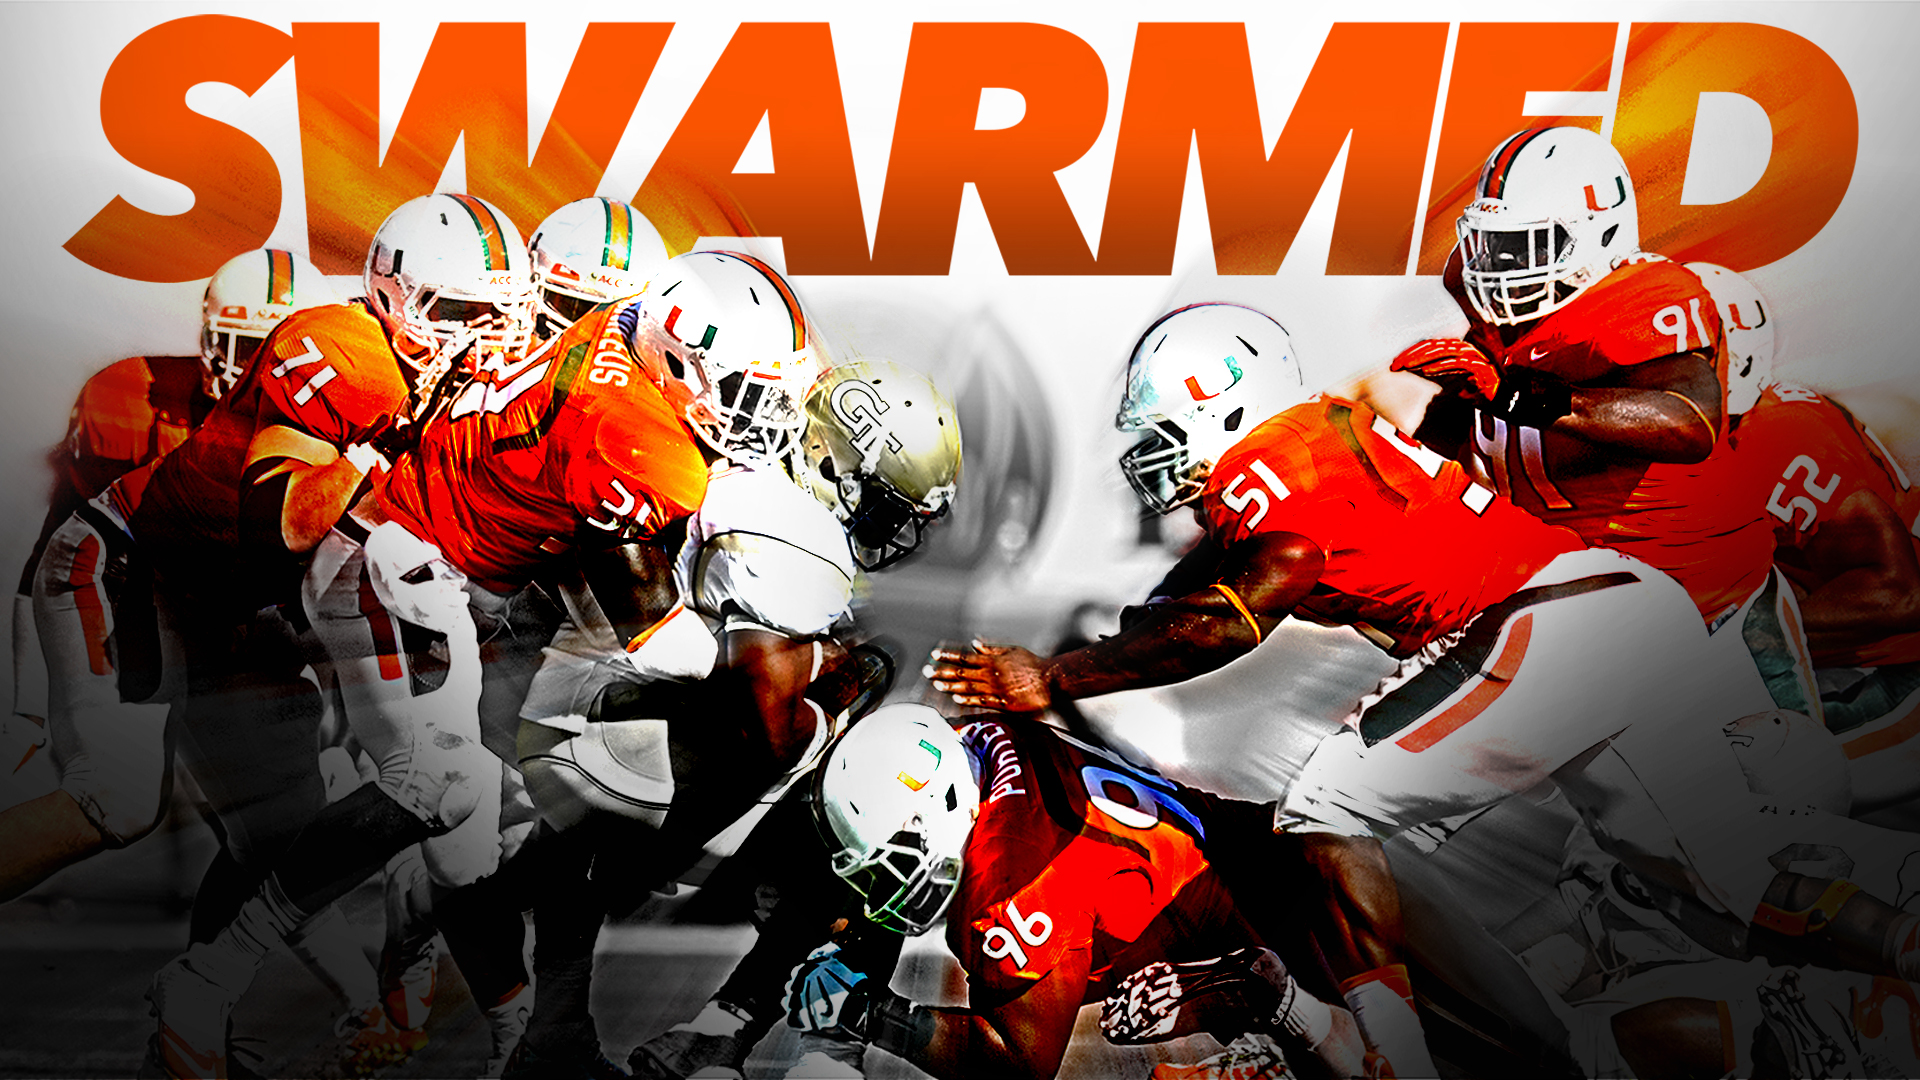 University Miami Hurricanes Official Athletic >> University of Miami Football Wallpaper - WallpaperSafari